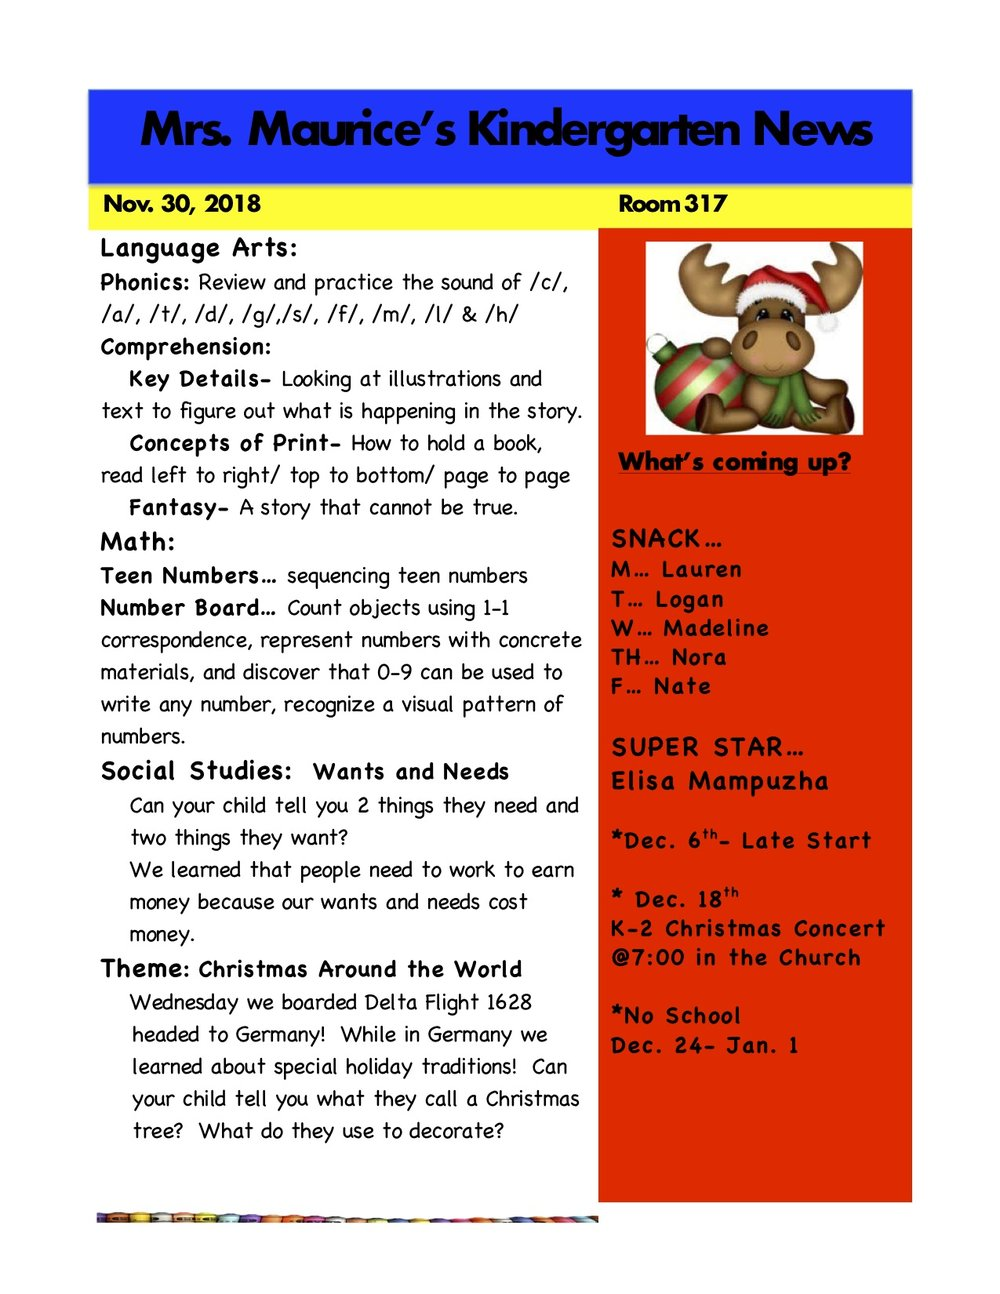 Kindergarten News Nov. 30.jpg